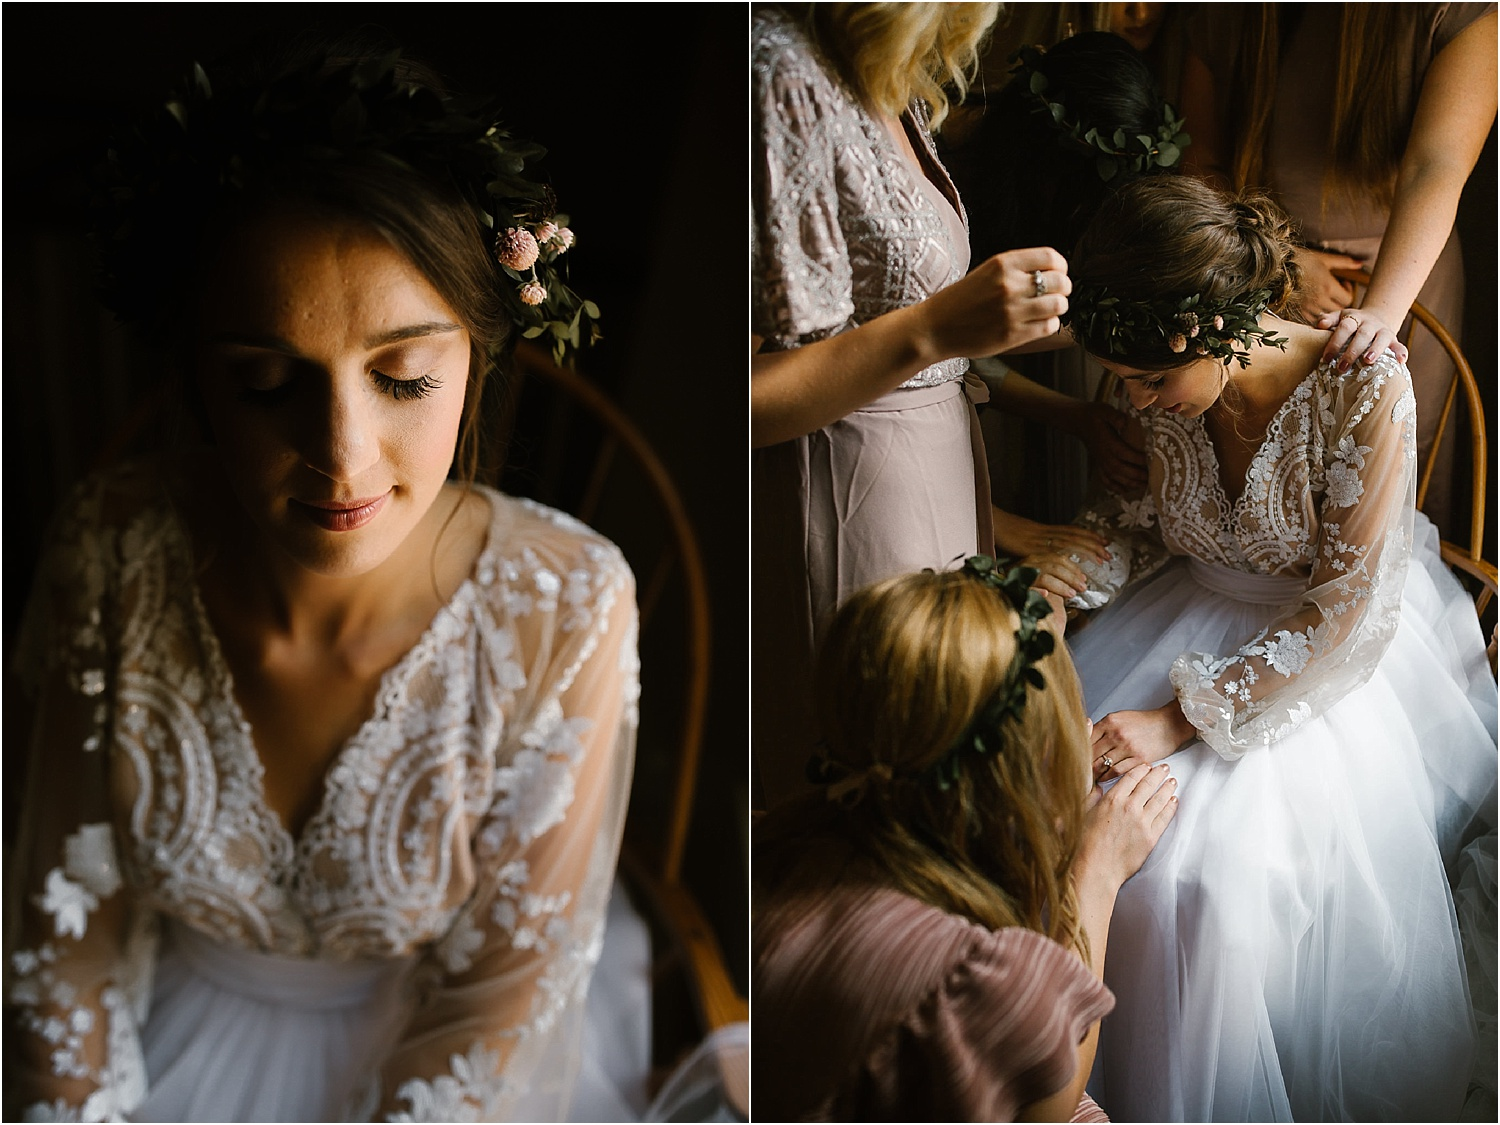 scarlet oakes estate bohemian wedding inspiration lace sleeves and tulle skirt.jpg